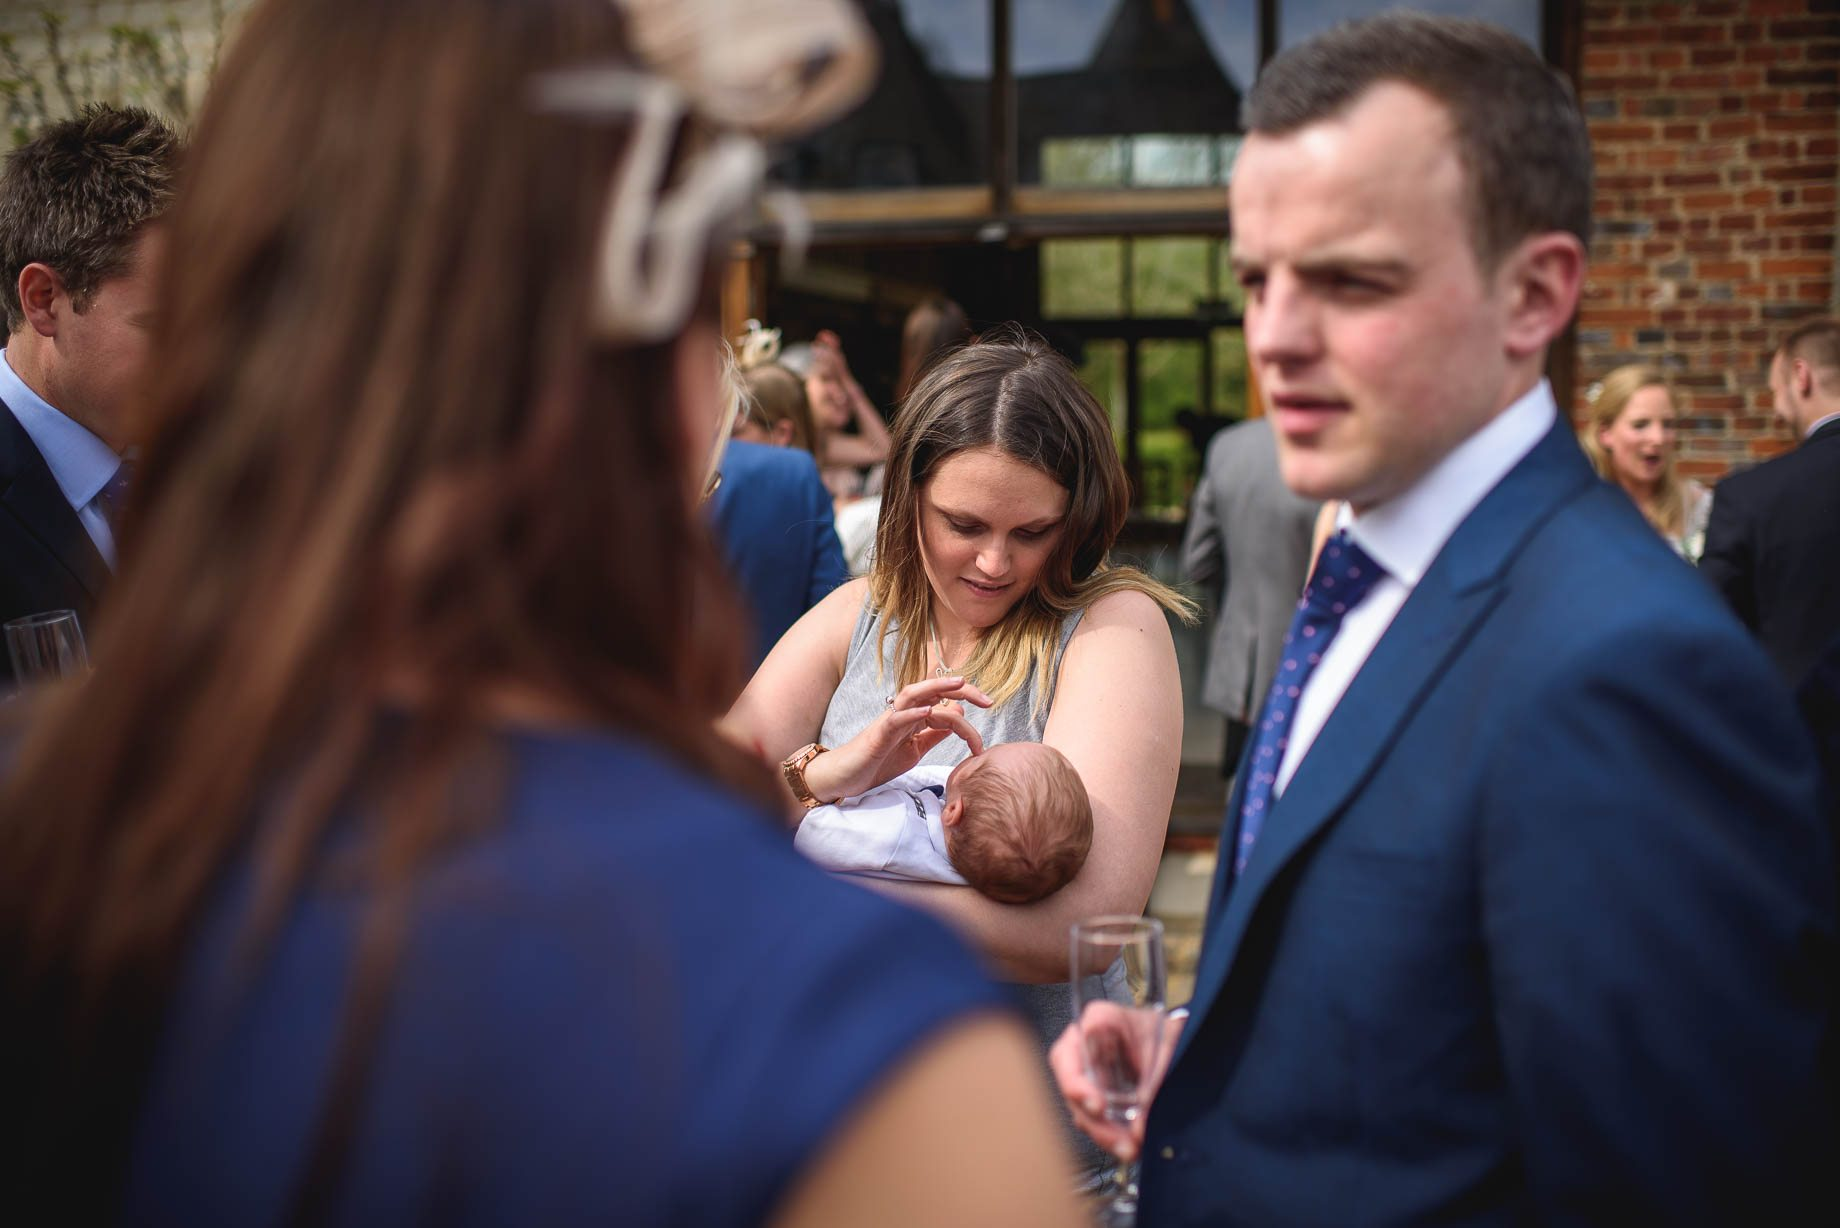 Bury Court Barn wedding photography by Guy Collier - Heather and Pat (75 of 170)